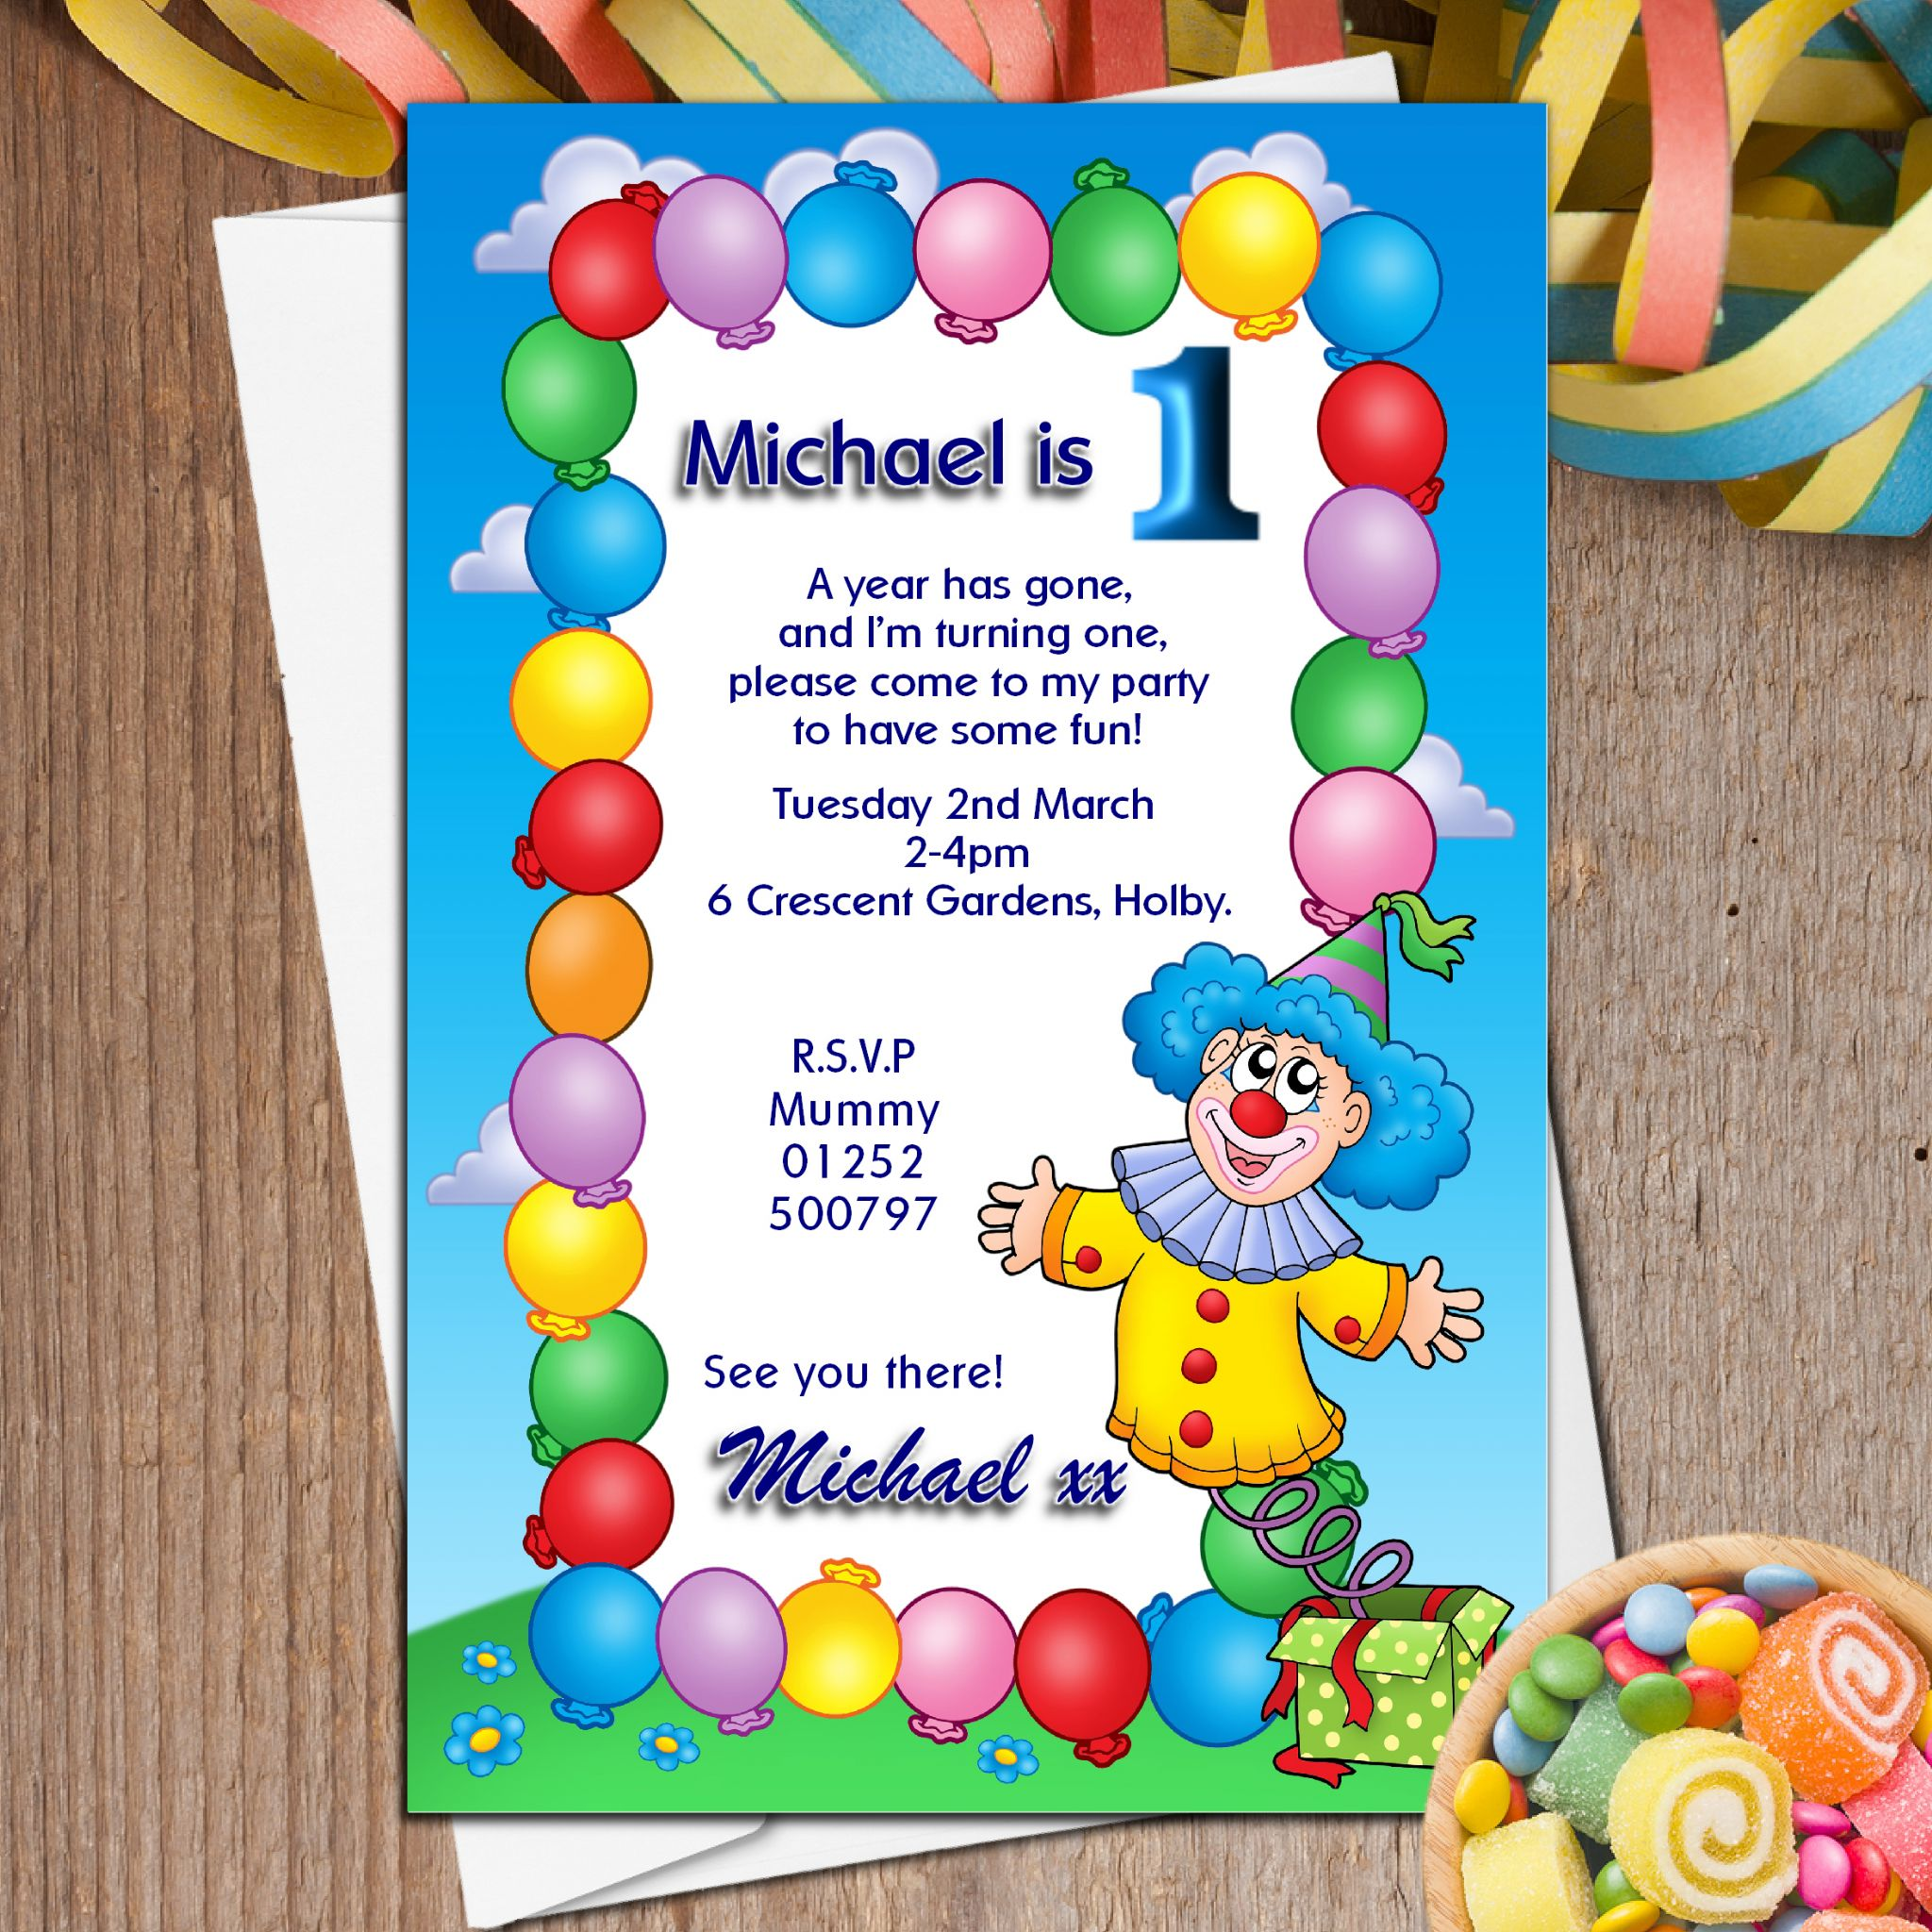 10 Personalised Clown Balloons Birthday Party Invitations N12 – Clown Birthday Party Invitations